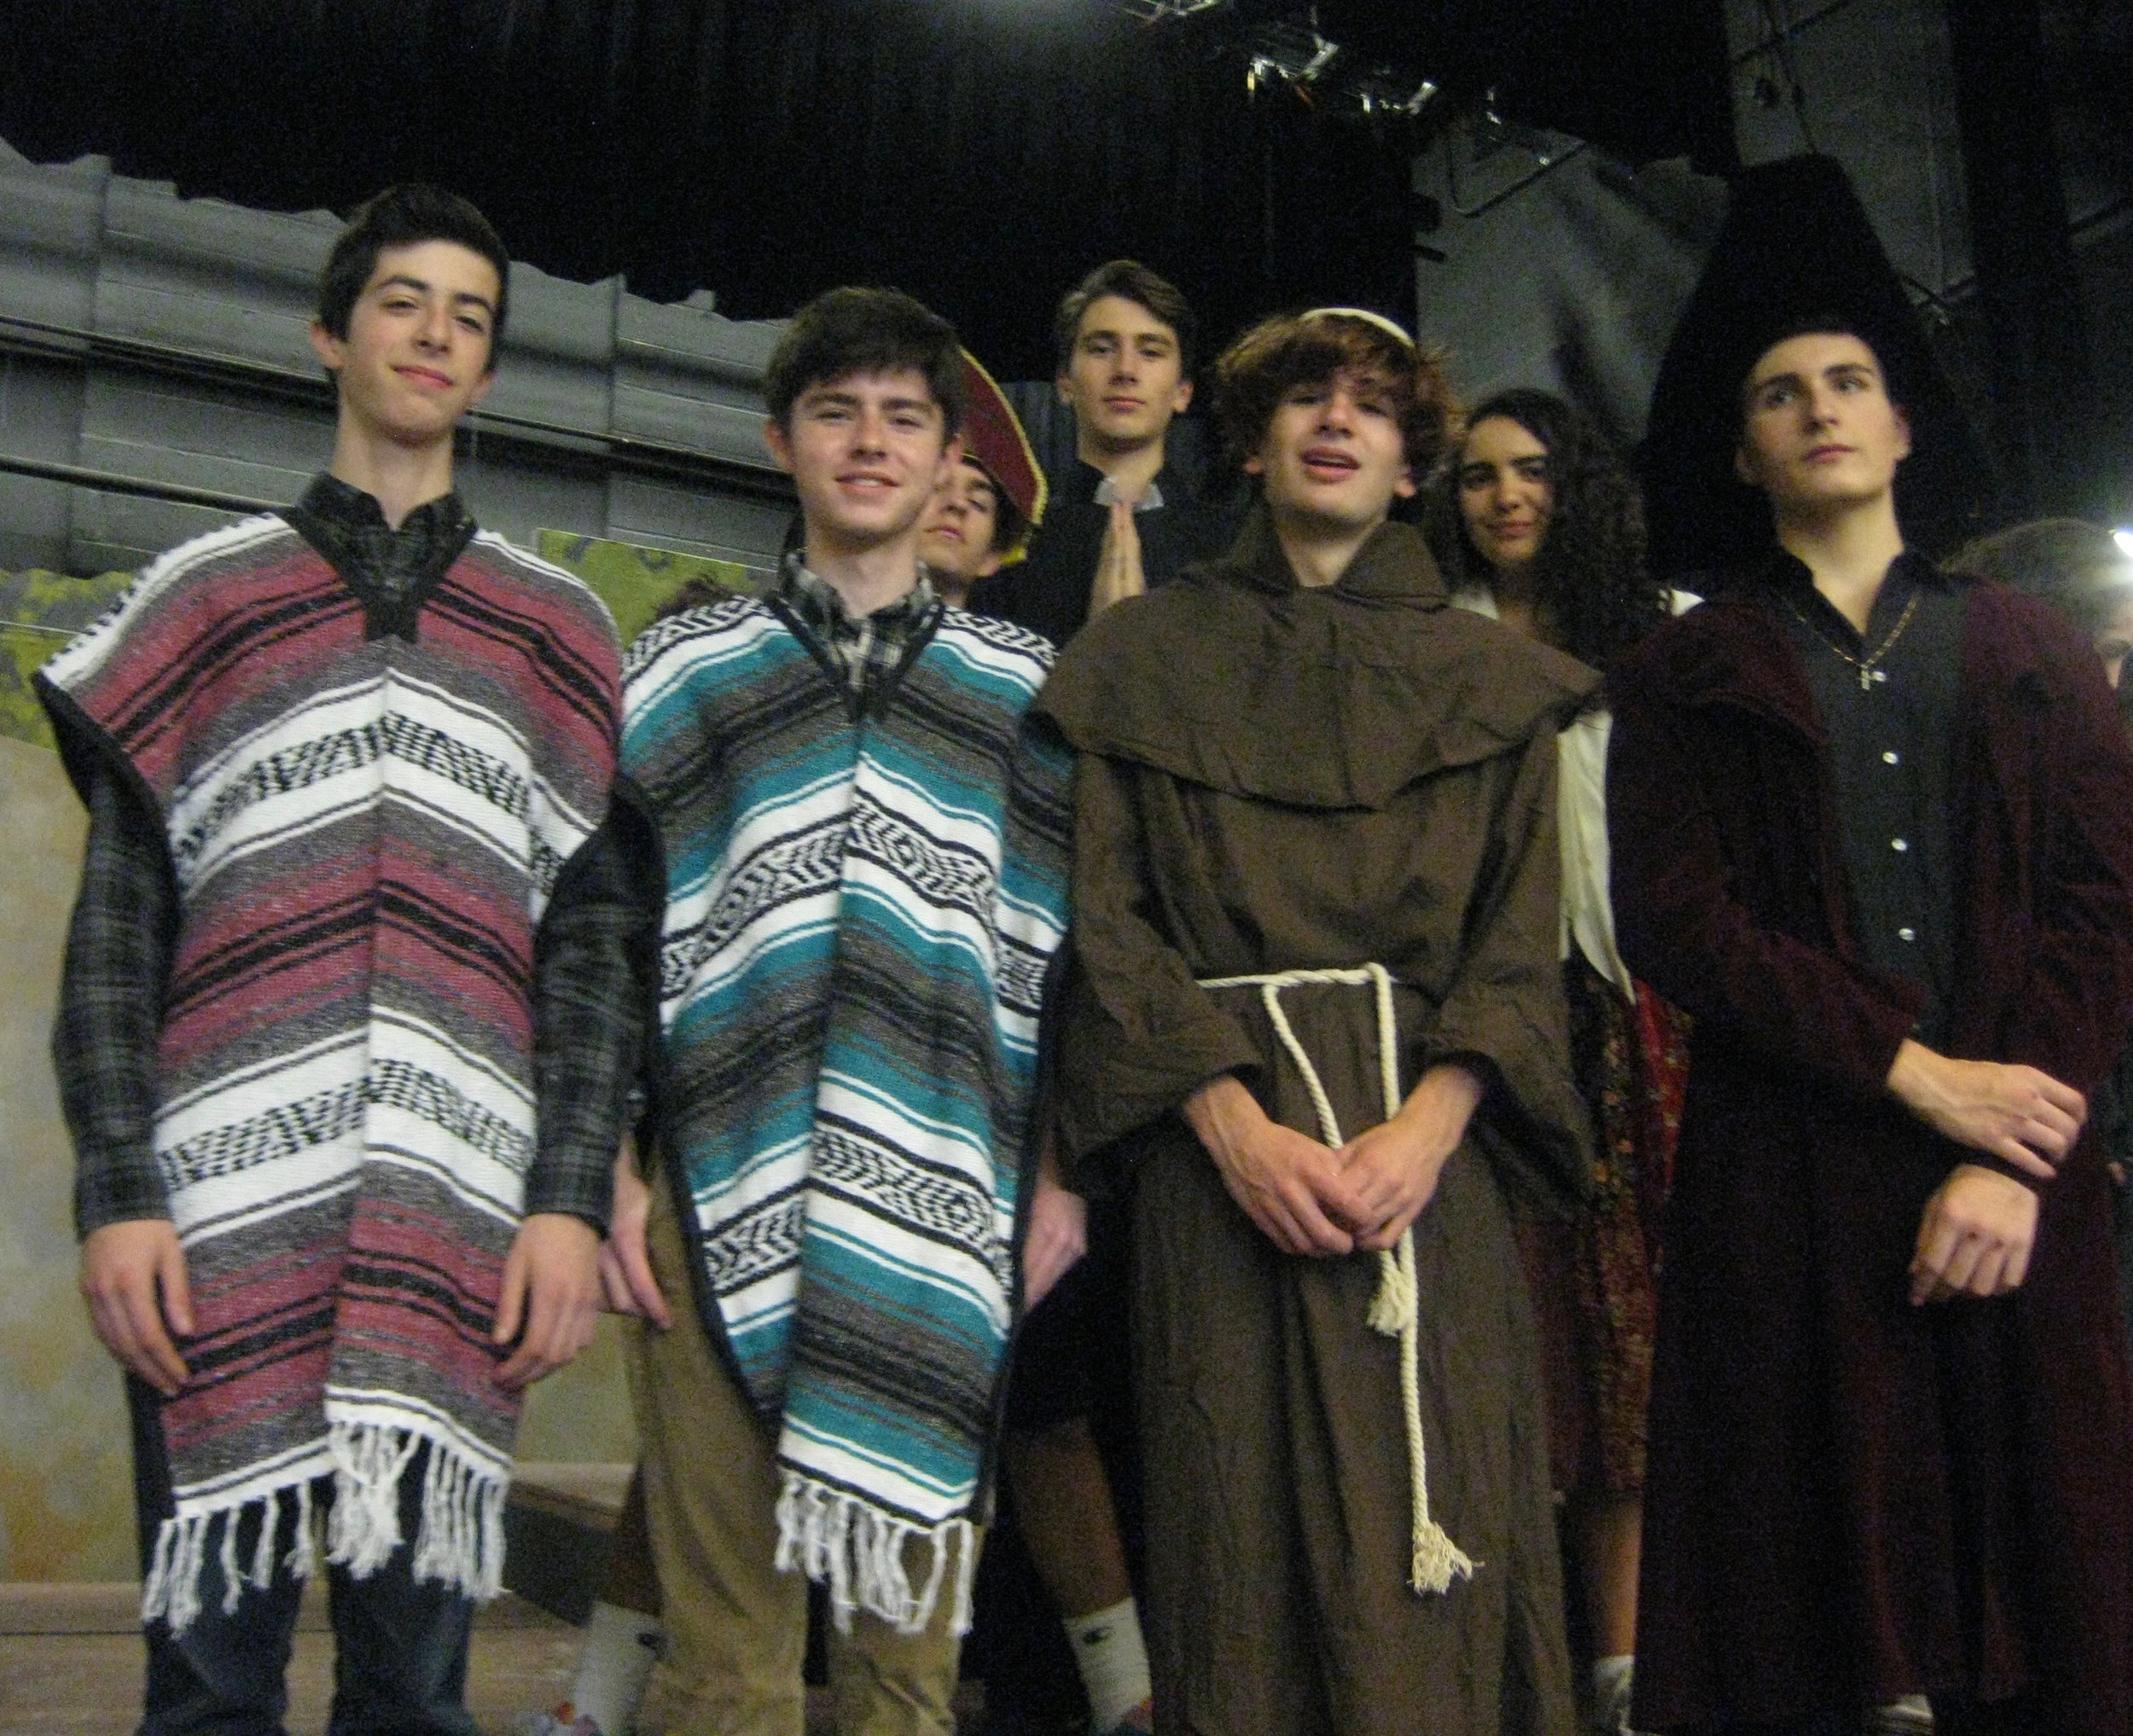 BRIDGE-CAST-1-MANUEL-ESTEBAN-BROTHER-JUNIPER-CAPTAIN-ALVARADO-PRIES.jpg